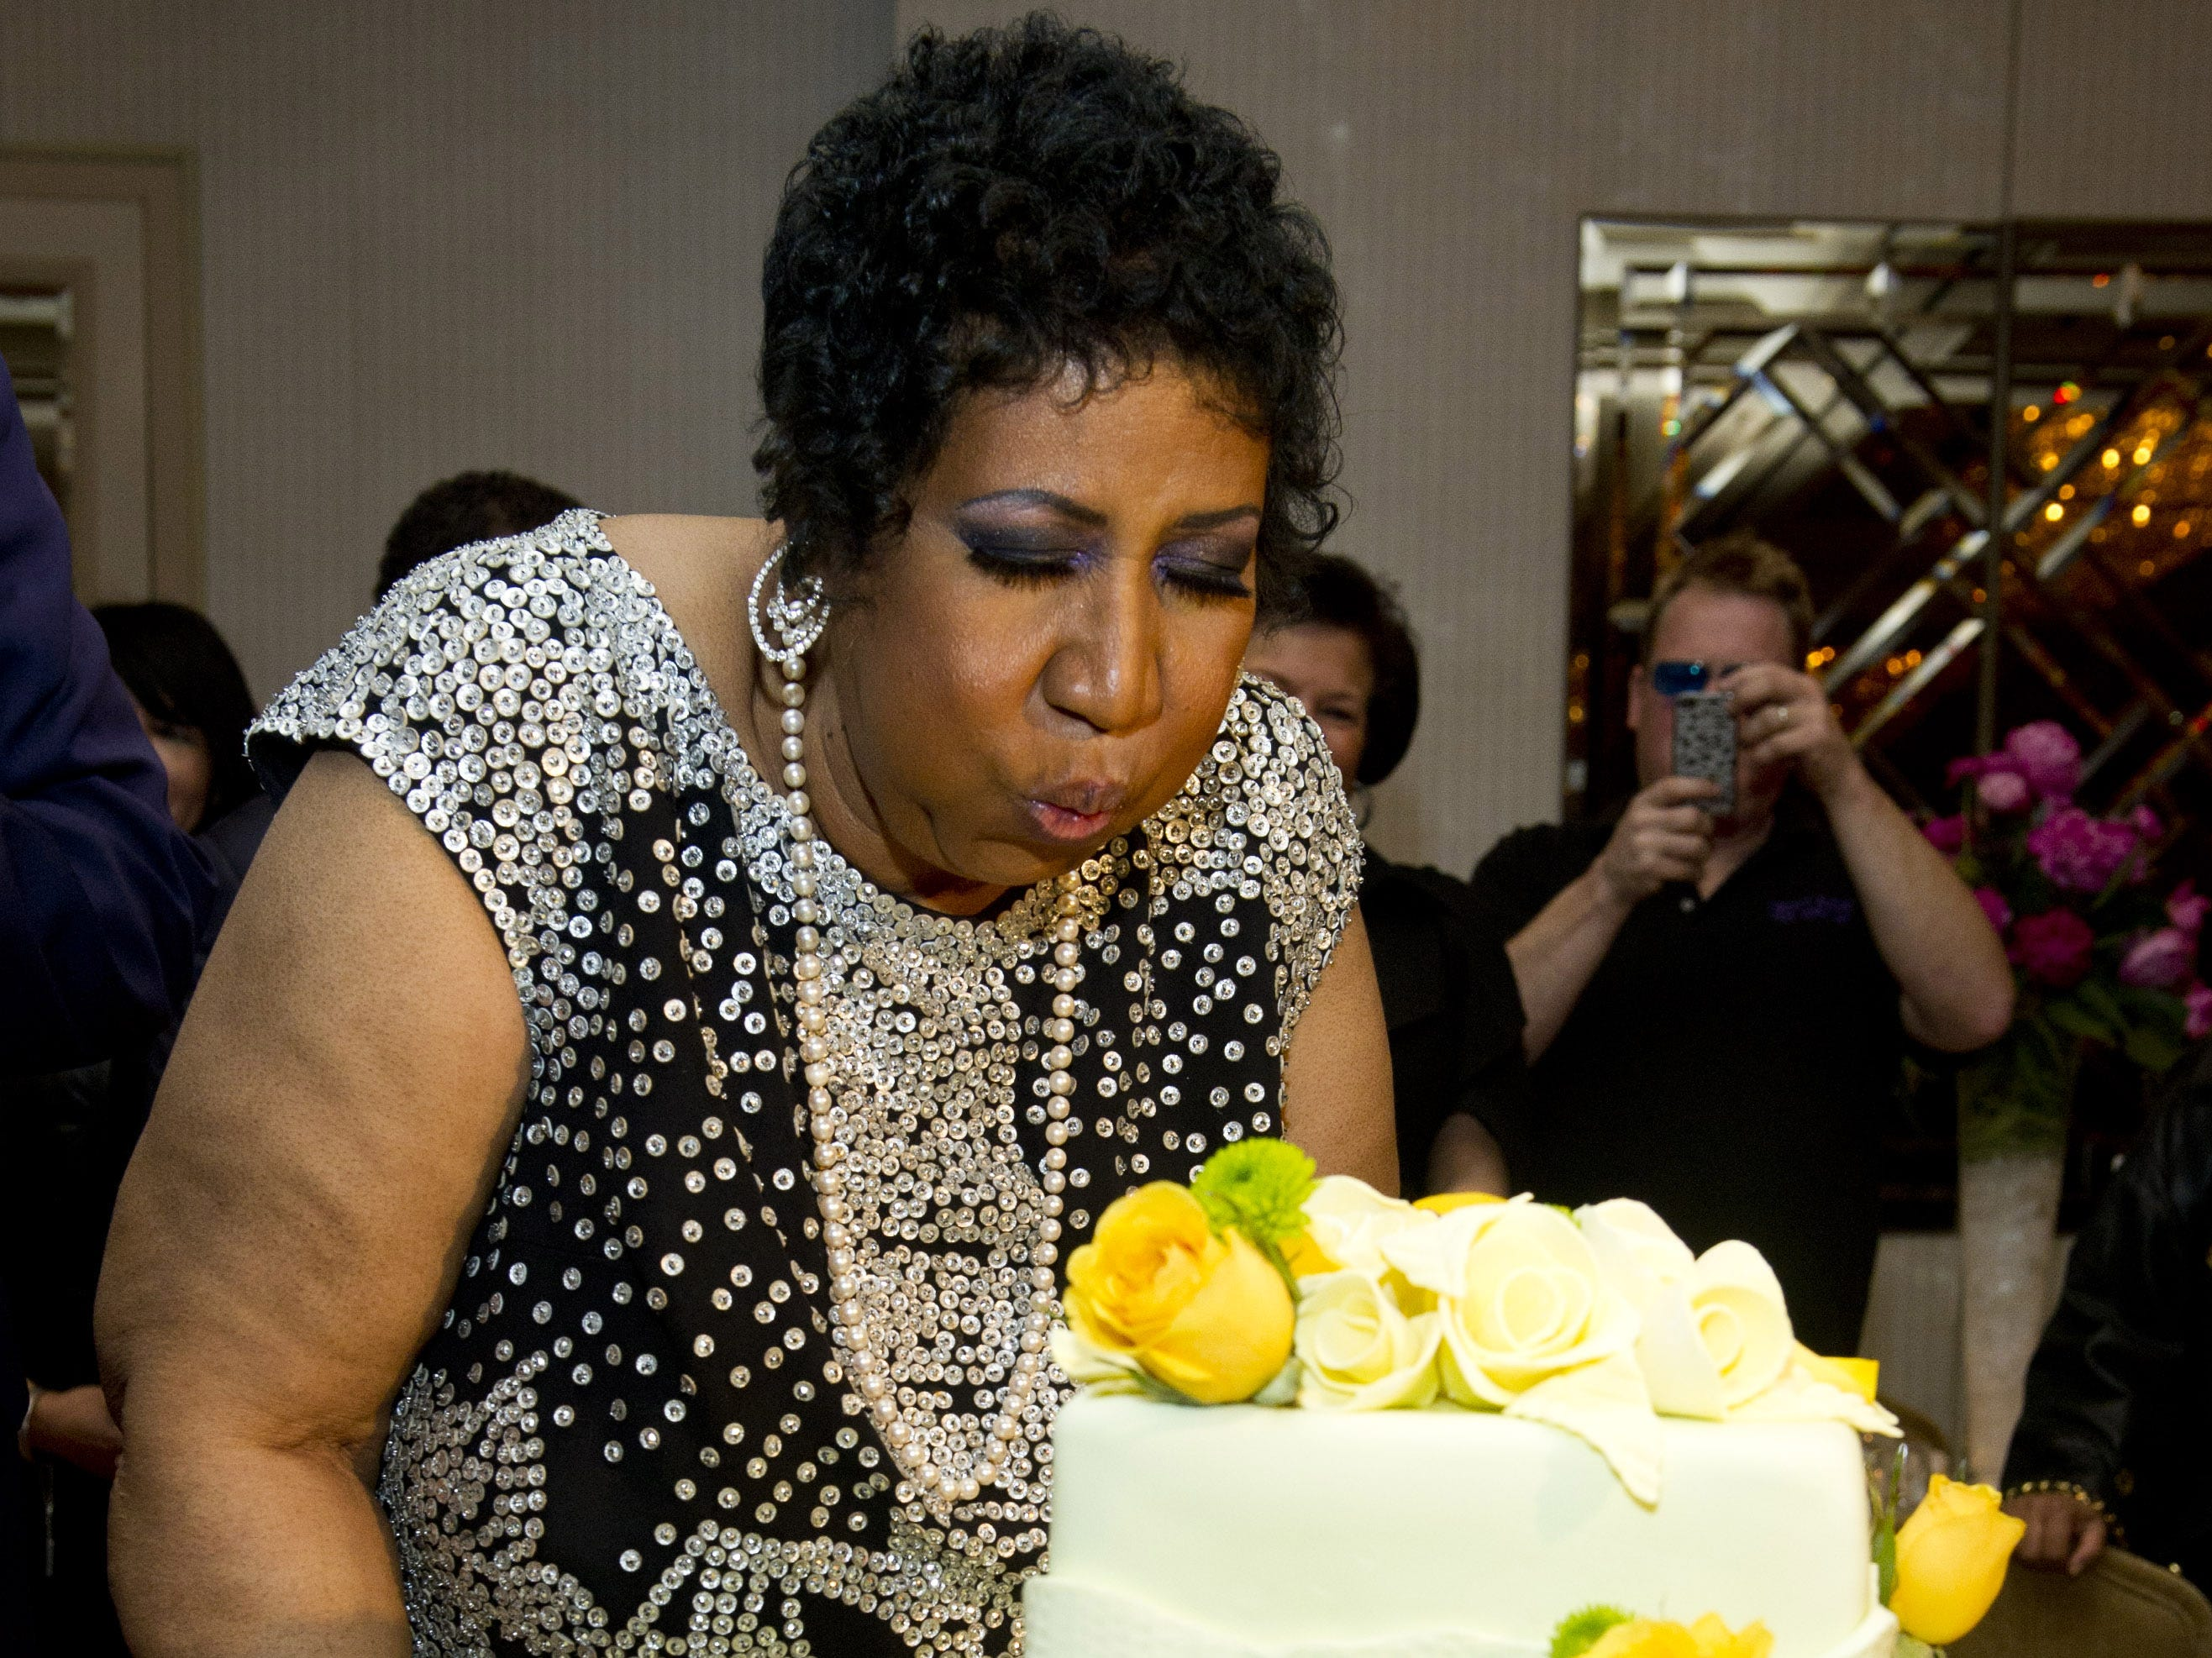 Aretha Franklin attends her 70th birthday party in New York, Saturday, March 24, 2012.